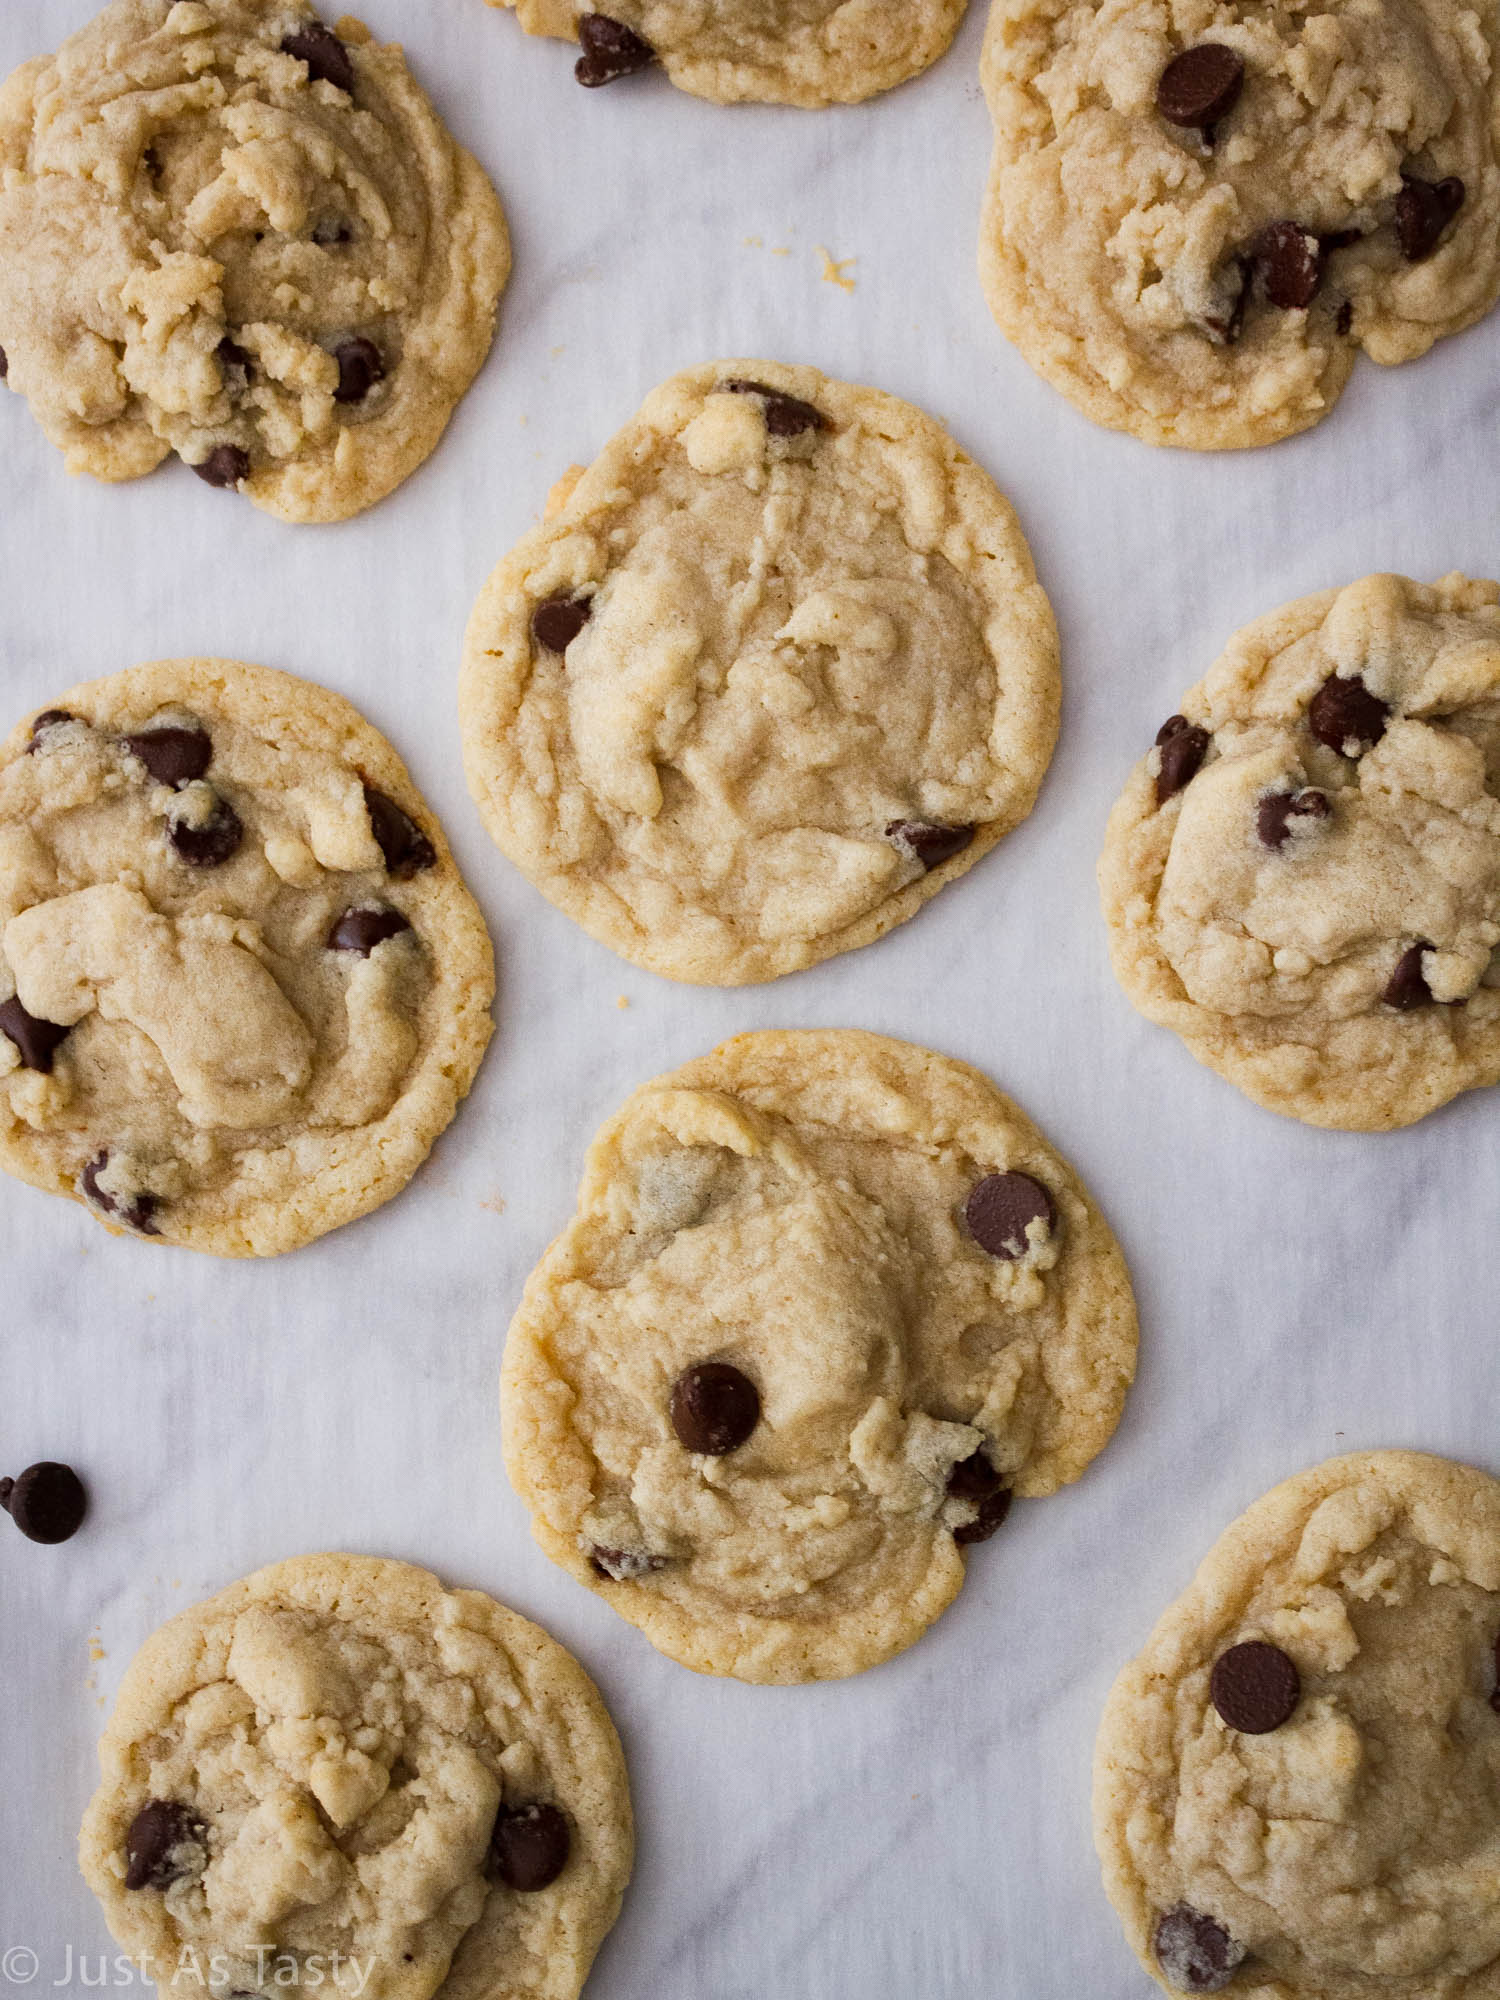 Eggless chocolate chip cookies on white parchment paper.